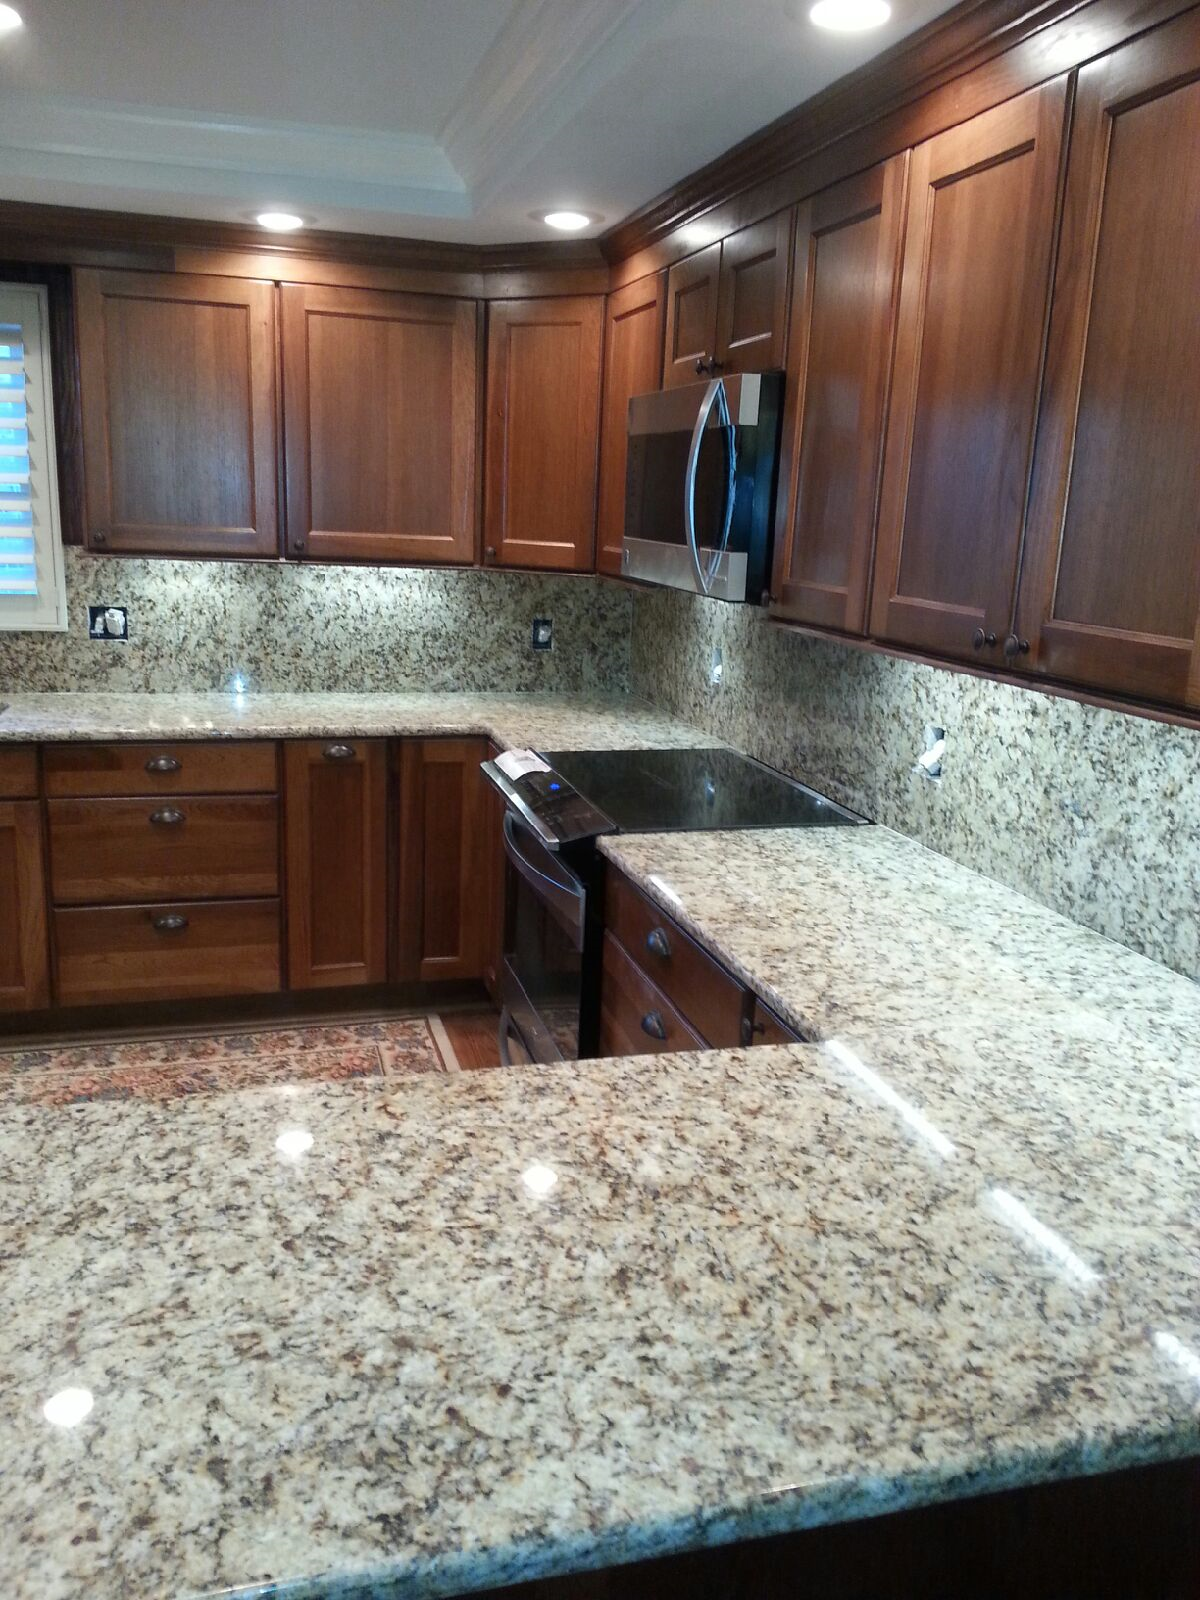 Granite Counter Tops Can Look Sharp But How Do You Choose The Right Color